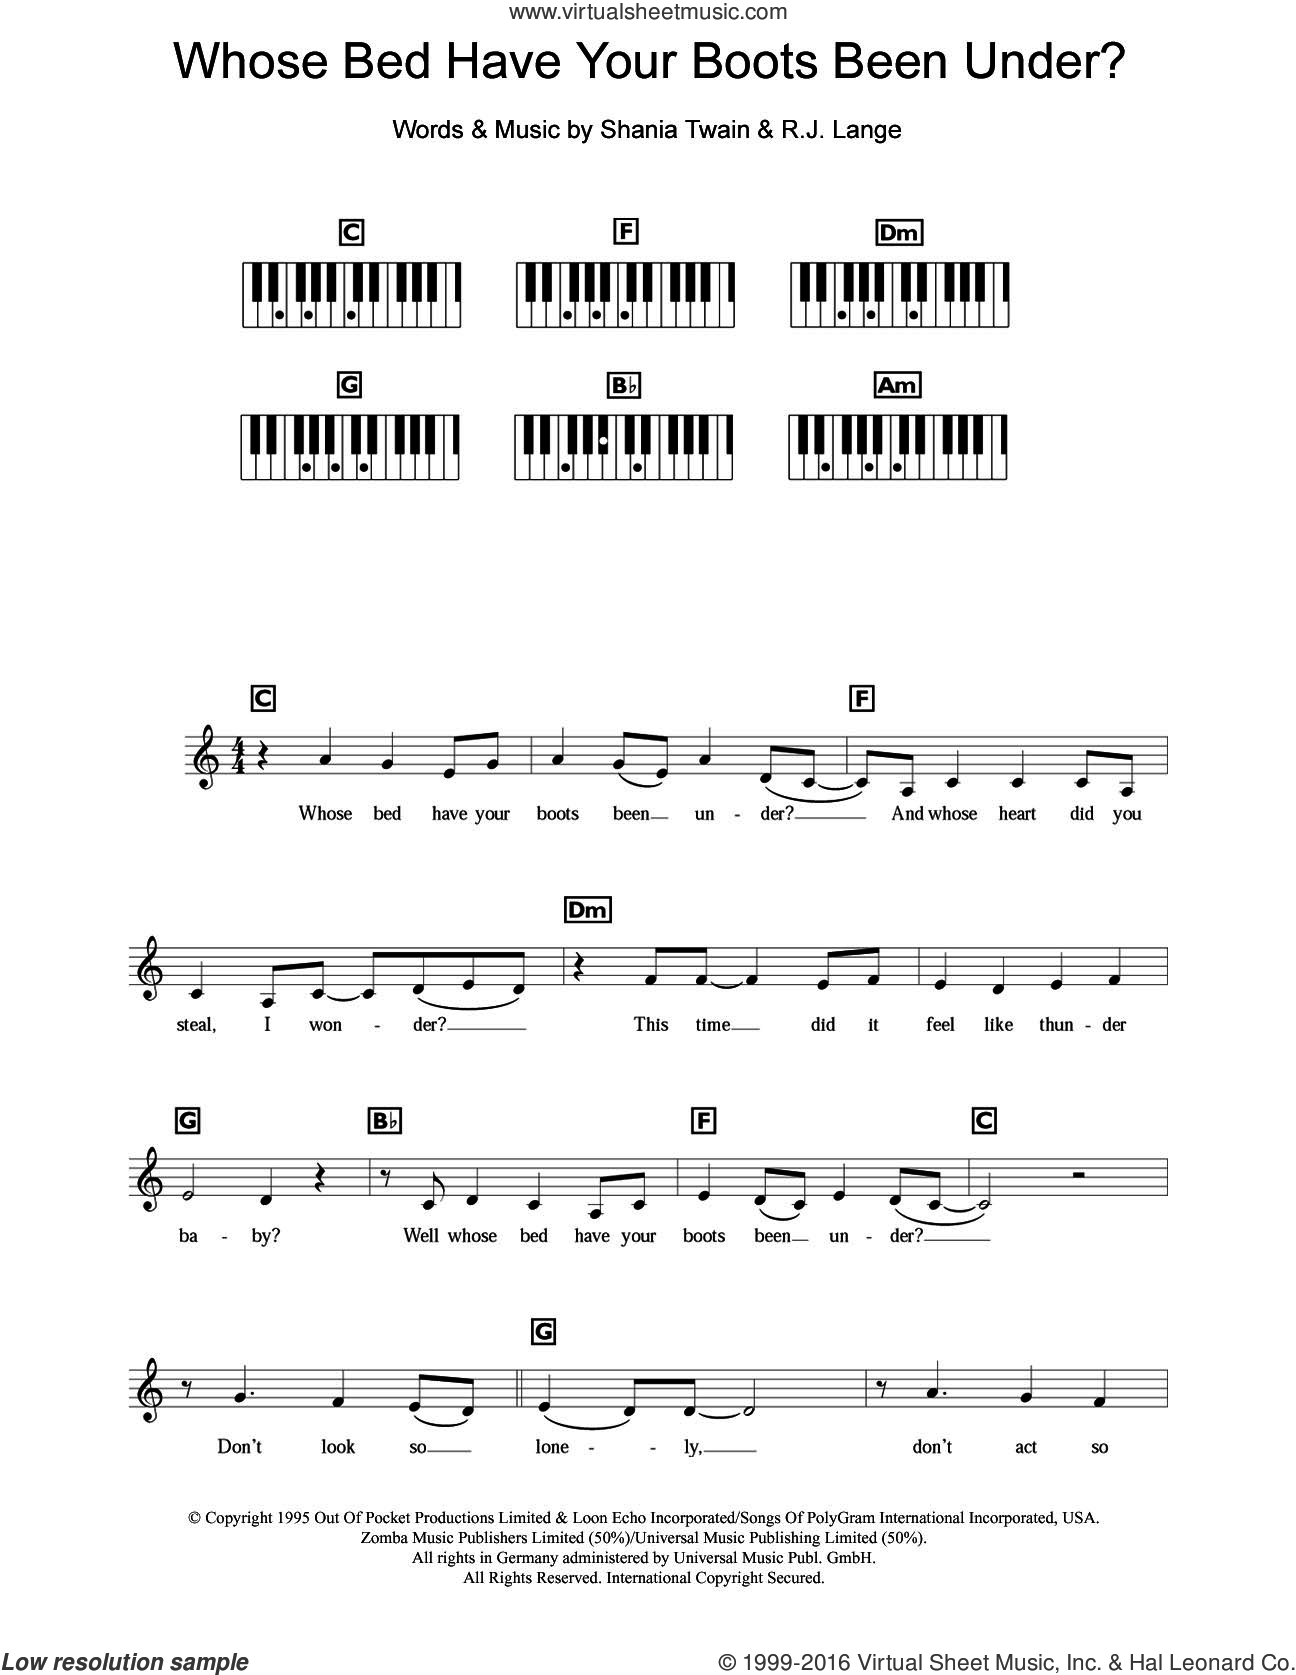 Whose Bed Have Your Boots Been Under? sheet music for piano solo (chords, lyrics, melody) by Robert John Lange and Shania Twain. Score Image Preview.